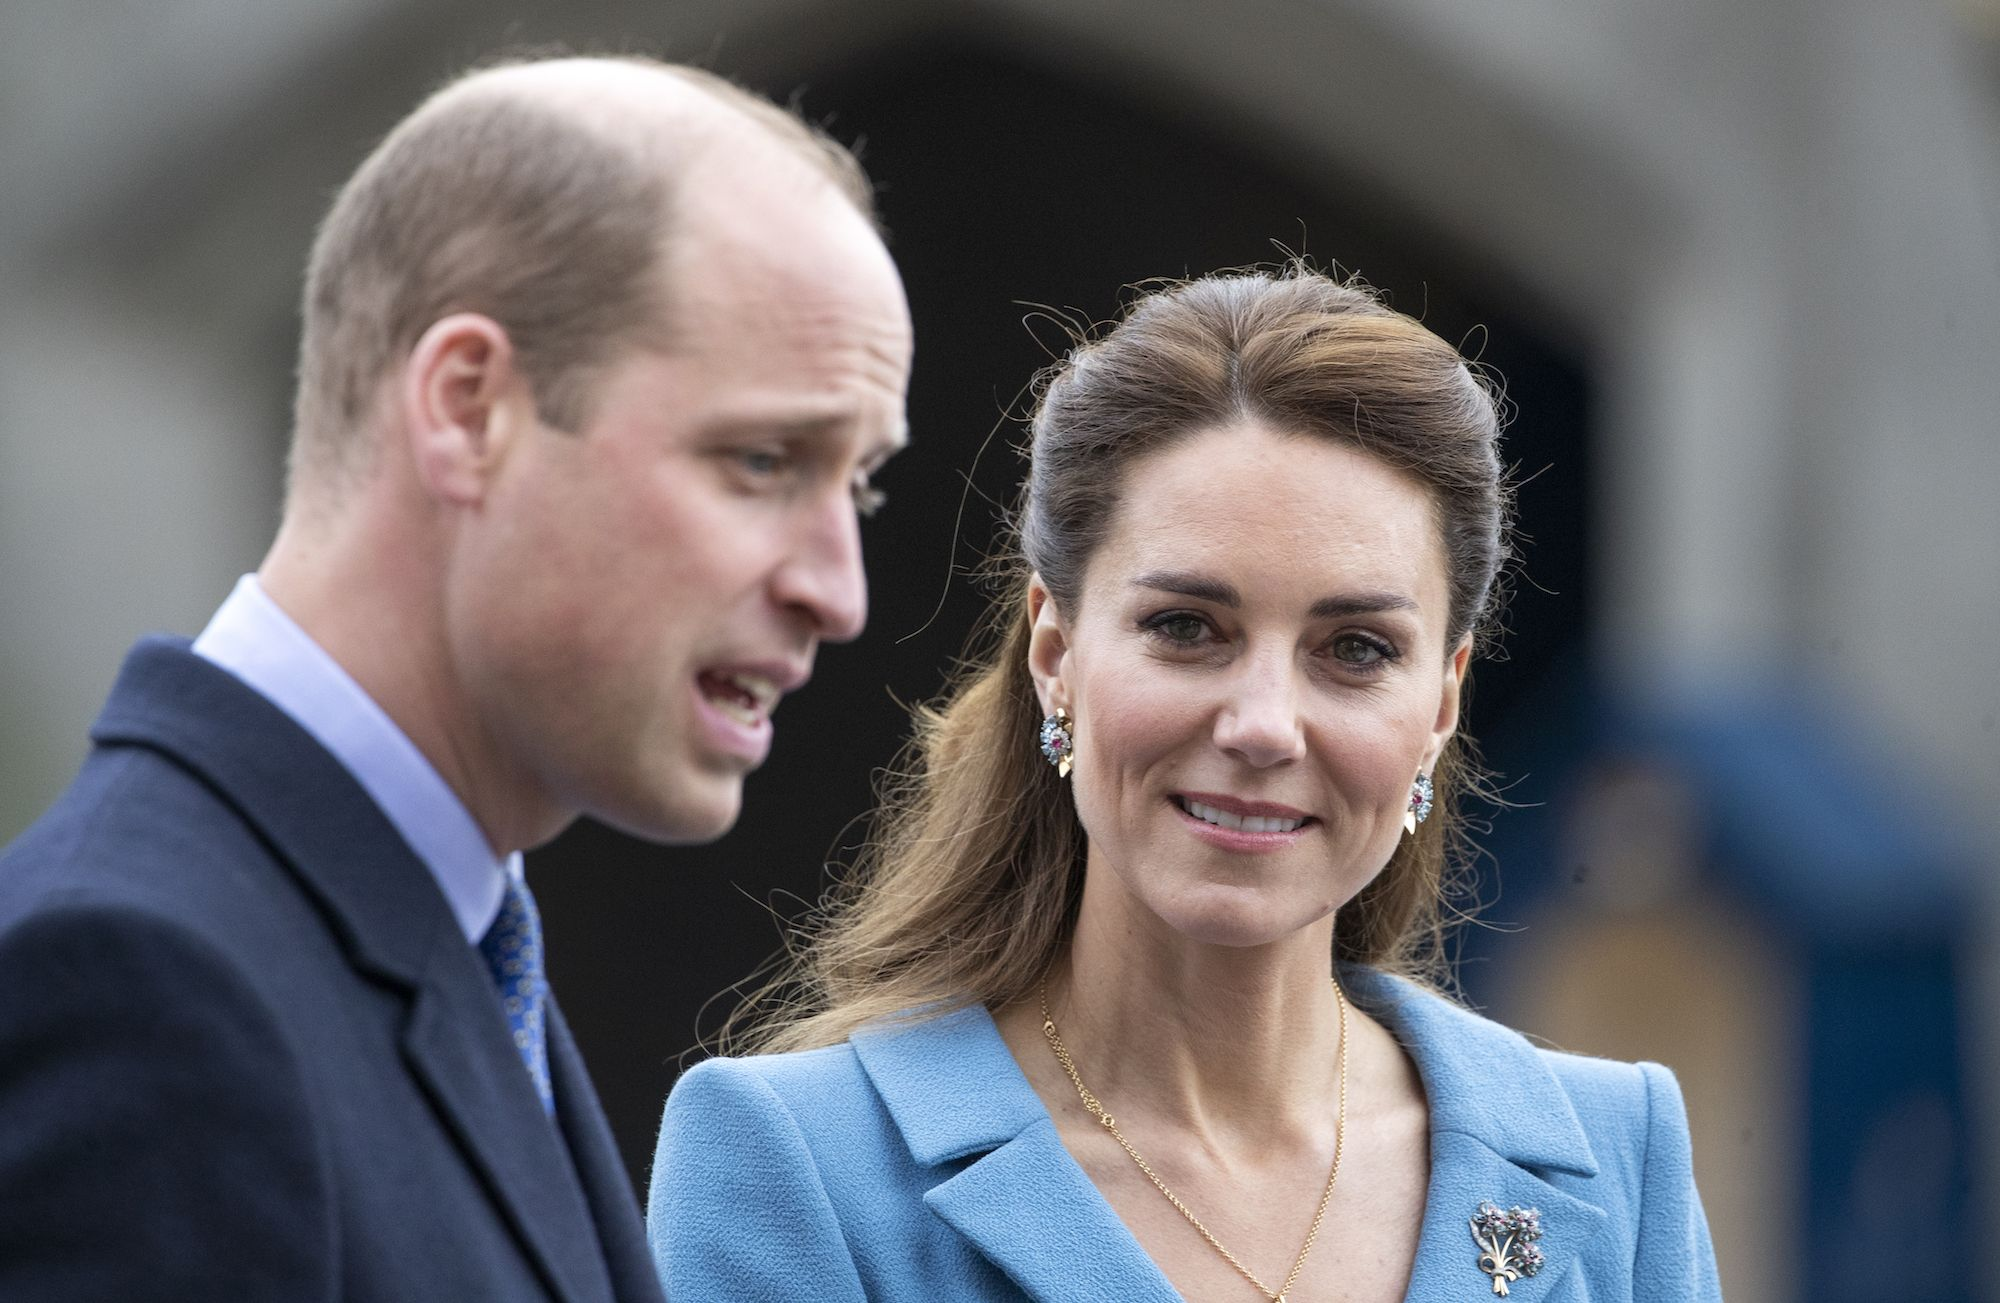 Why Kate Middleton didn't attend the Diana statue unveiling